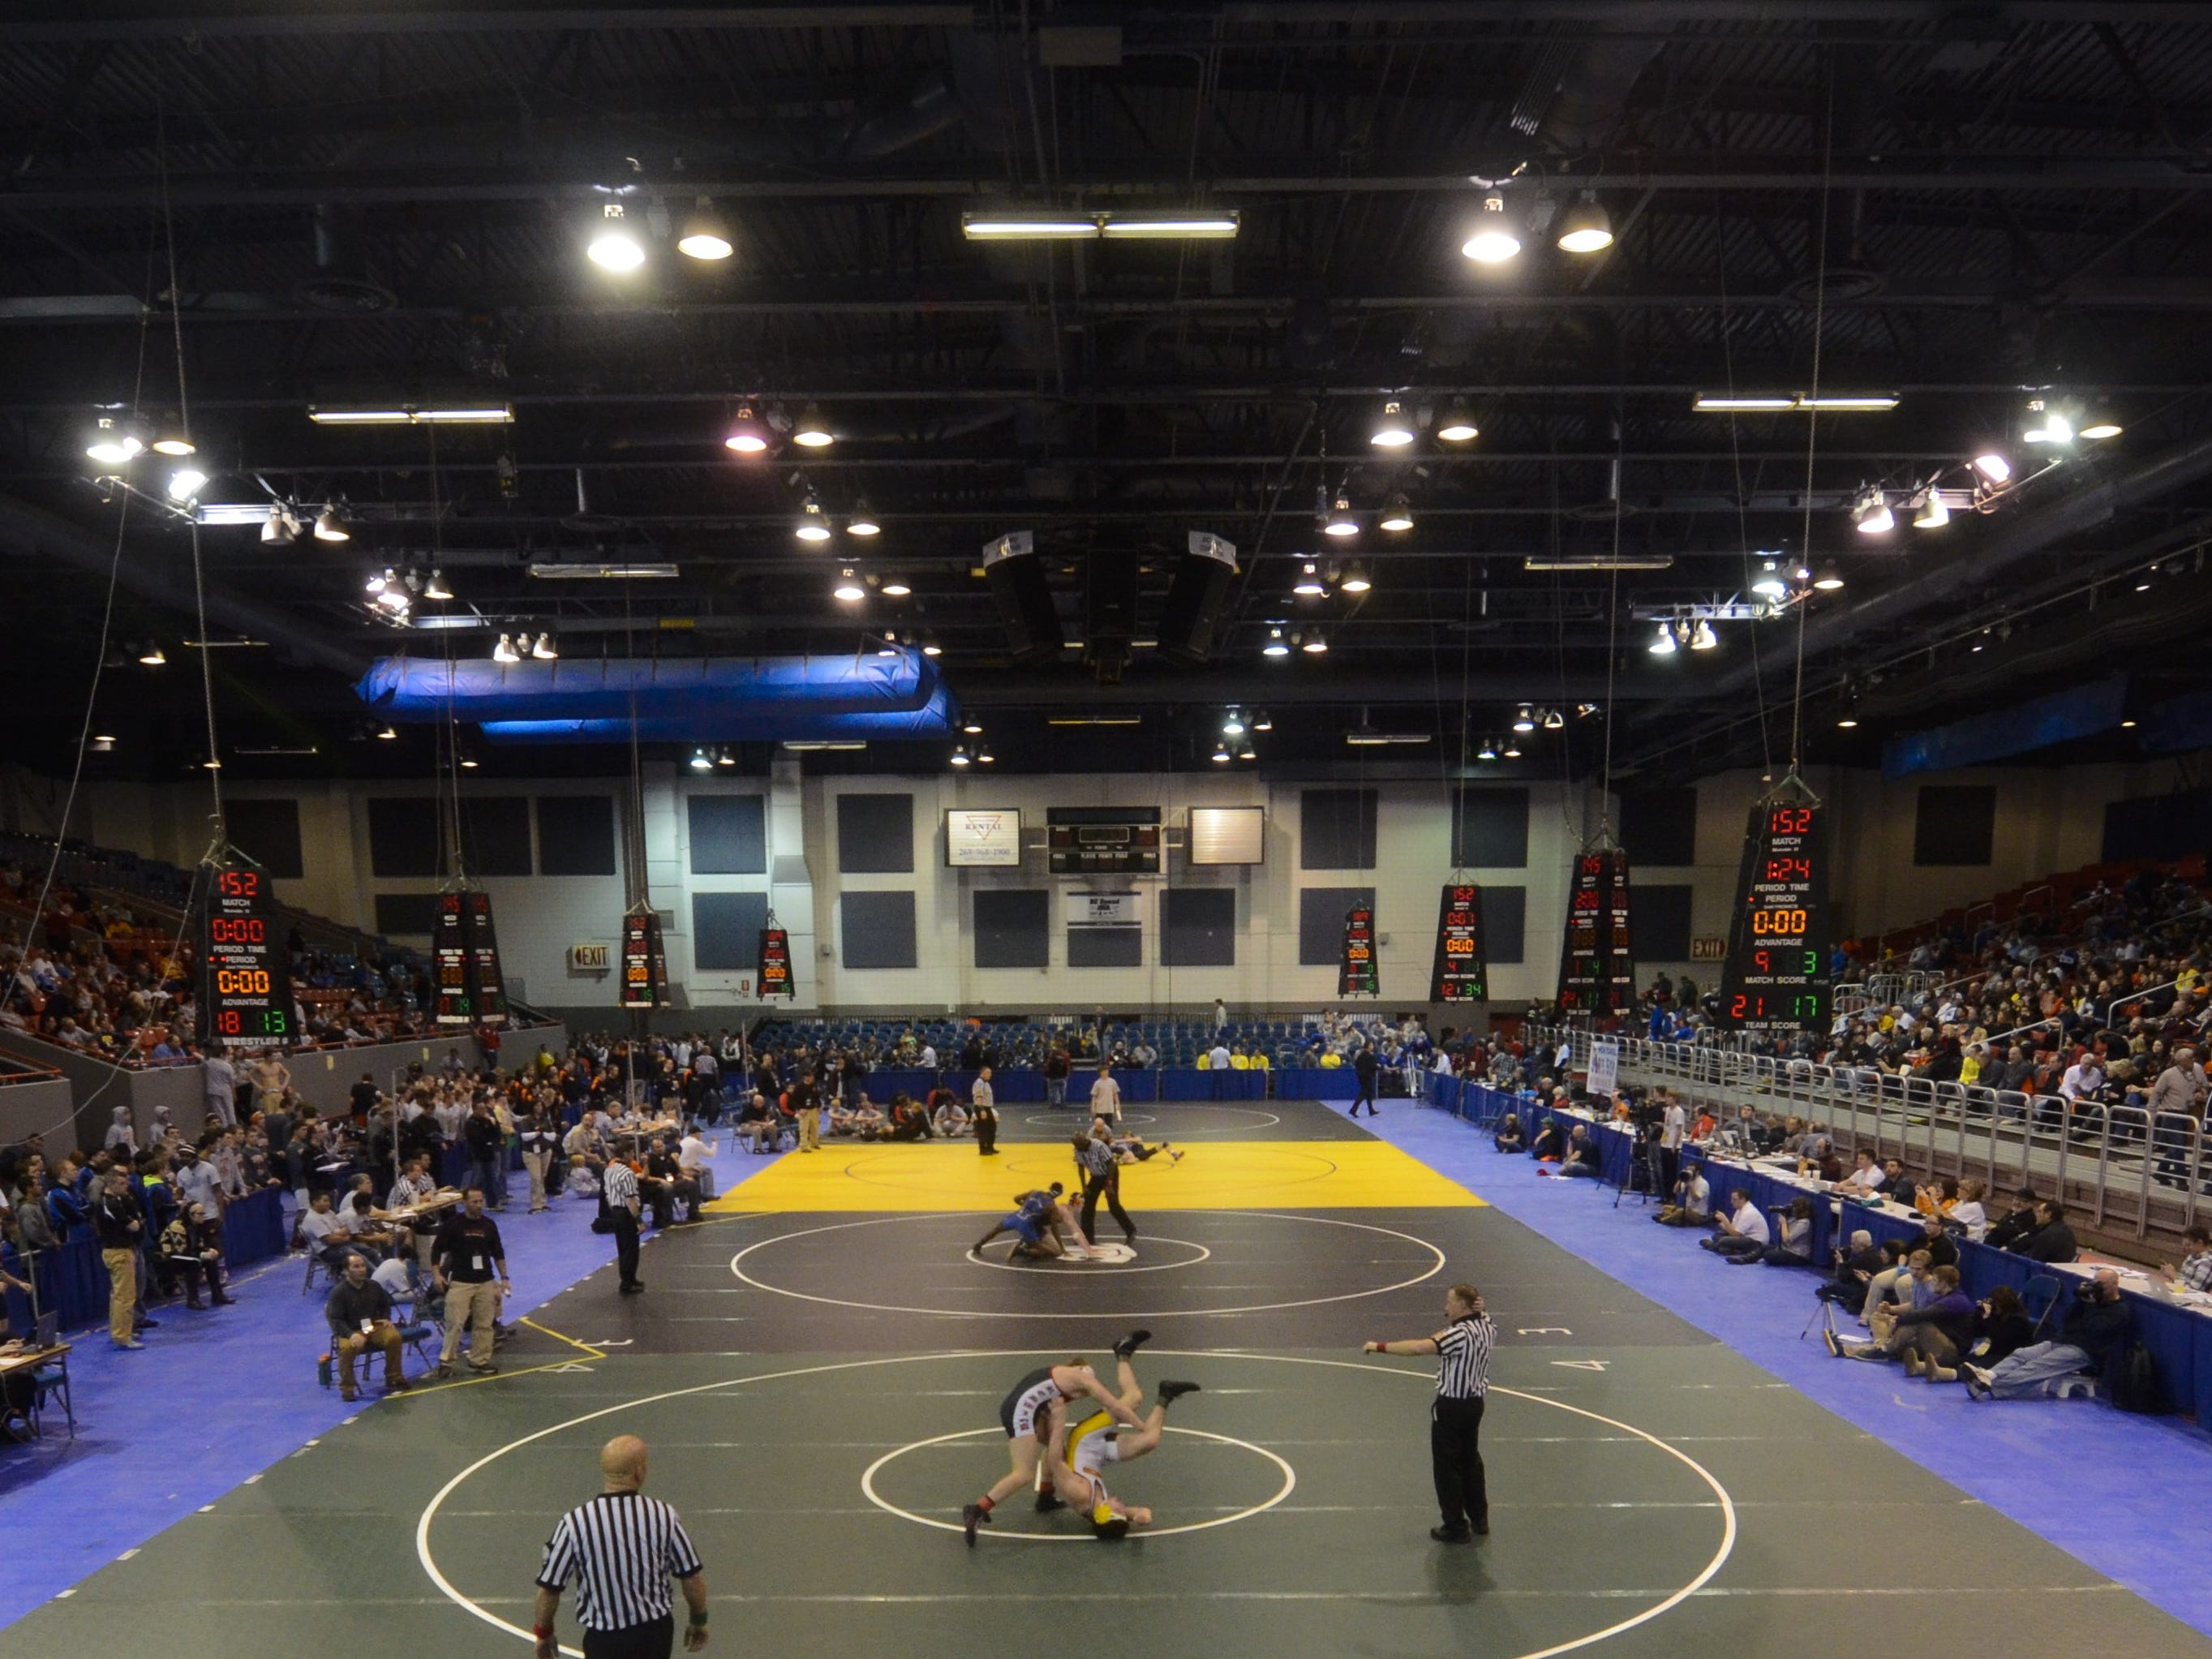 Kellogg Arena, site of the Michigan High School Athletic Association Wrestling Team State Finals.